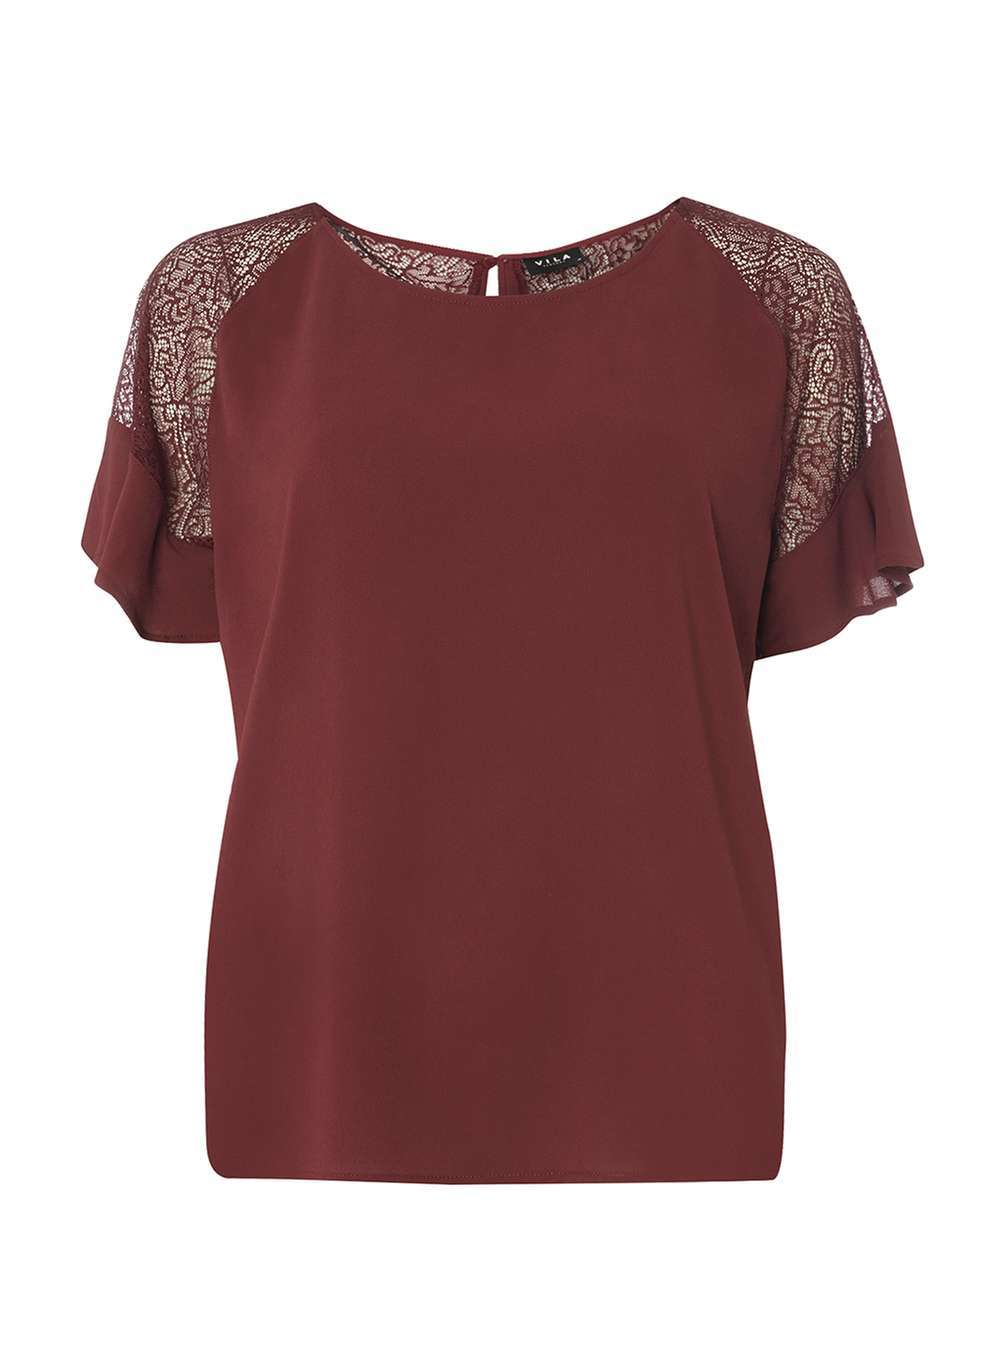 Womens **Vila Burgundy Lace Sleeve Top Red - pattern: plain; predominant colour: burgundy; occasions: evening; length: standard; style: top; fibres: polyester/polyamide - 100%; fit: loose; neckline: crew; sleeve length: short sleeve; sleeve style: standard; texture group: sheer fabrics/chiffon/organza etc.; pattern type: fabric; embellishment: lace; shoulder detail: sheer at shoulder; season: a/w 2016; wardrobe: event